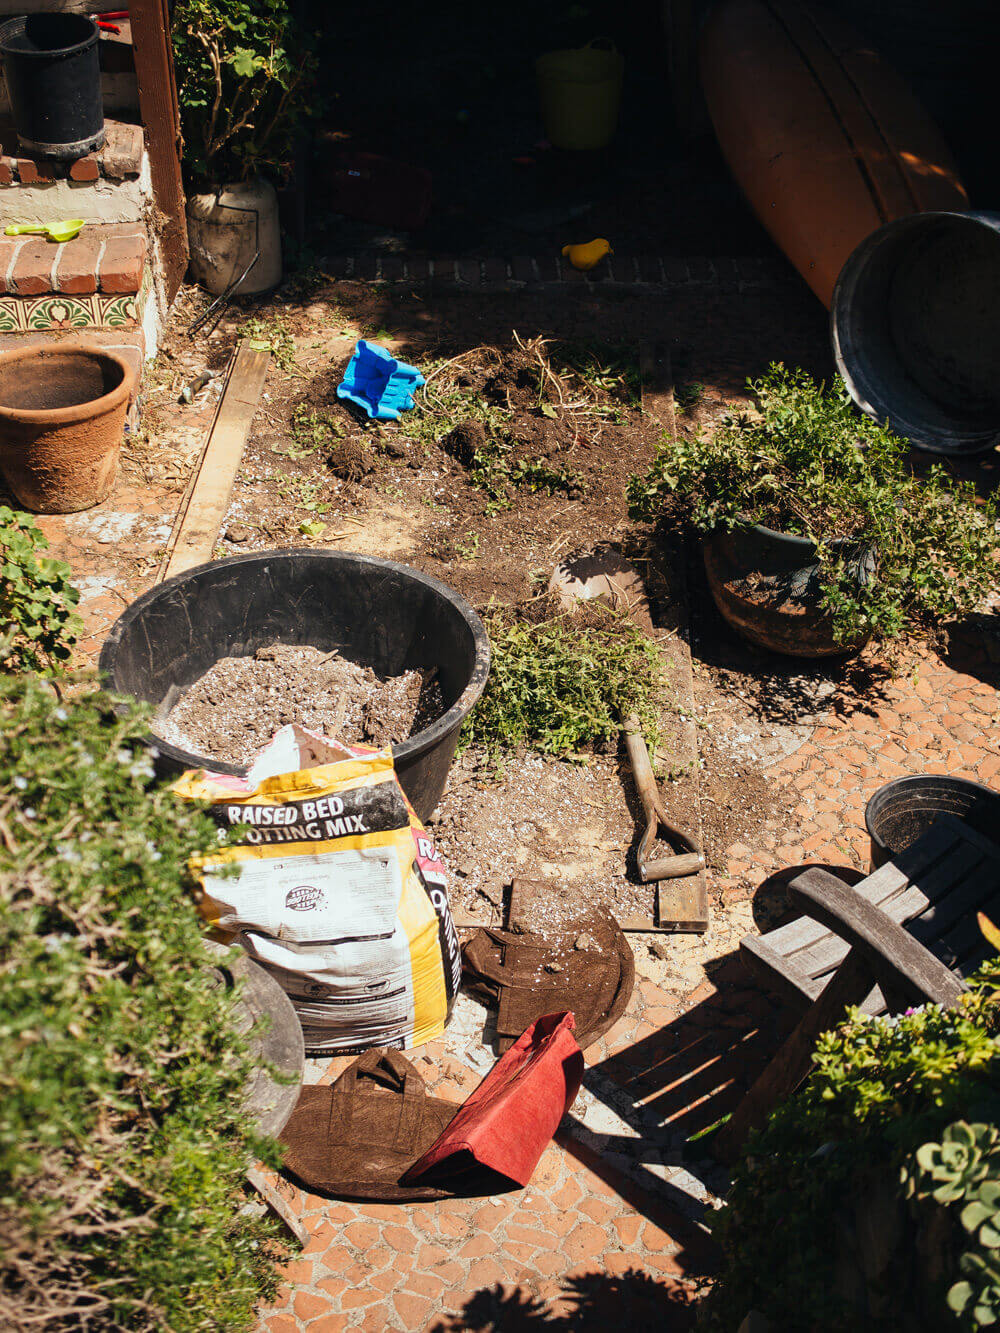 Last-minute clean-up in the garden